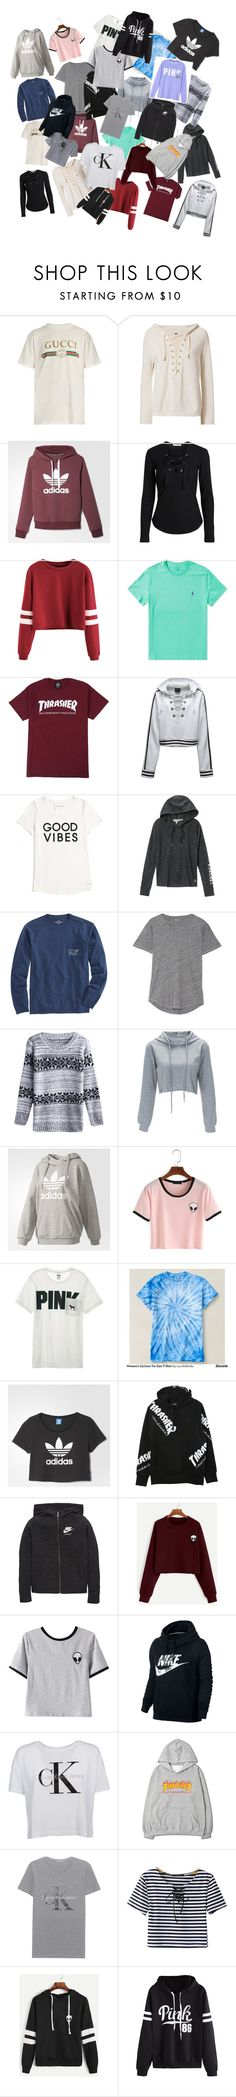 """""""Shirt favs"""" by kaylee-williams-2 ❤ liked on Polyvore featuring Gucci, NSF, adidas, Puma, Tommy Hilfiger, Victoria's Secret, Vineyard Vines, Madewell, HUF and NIKE"""